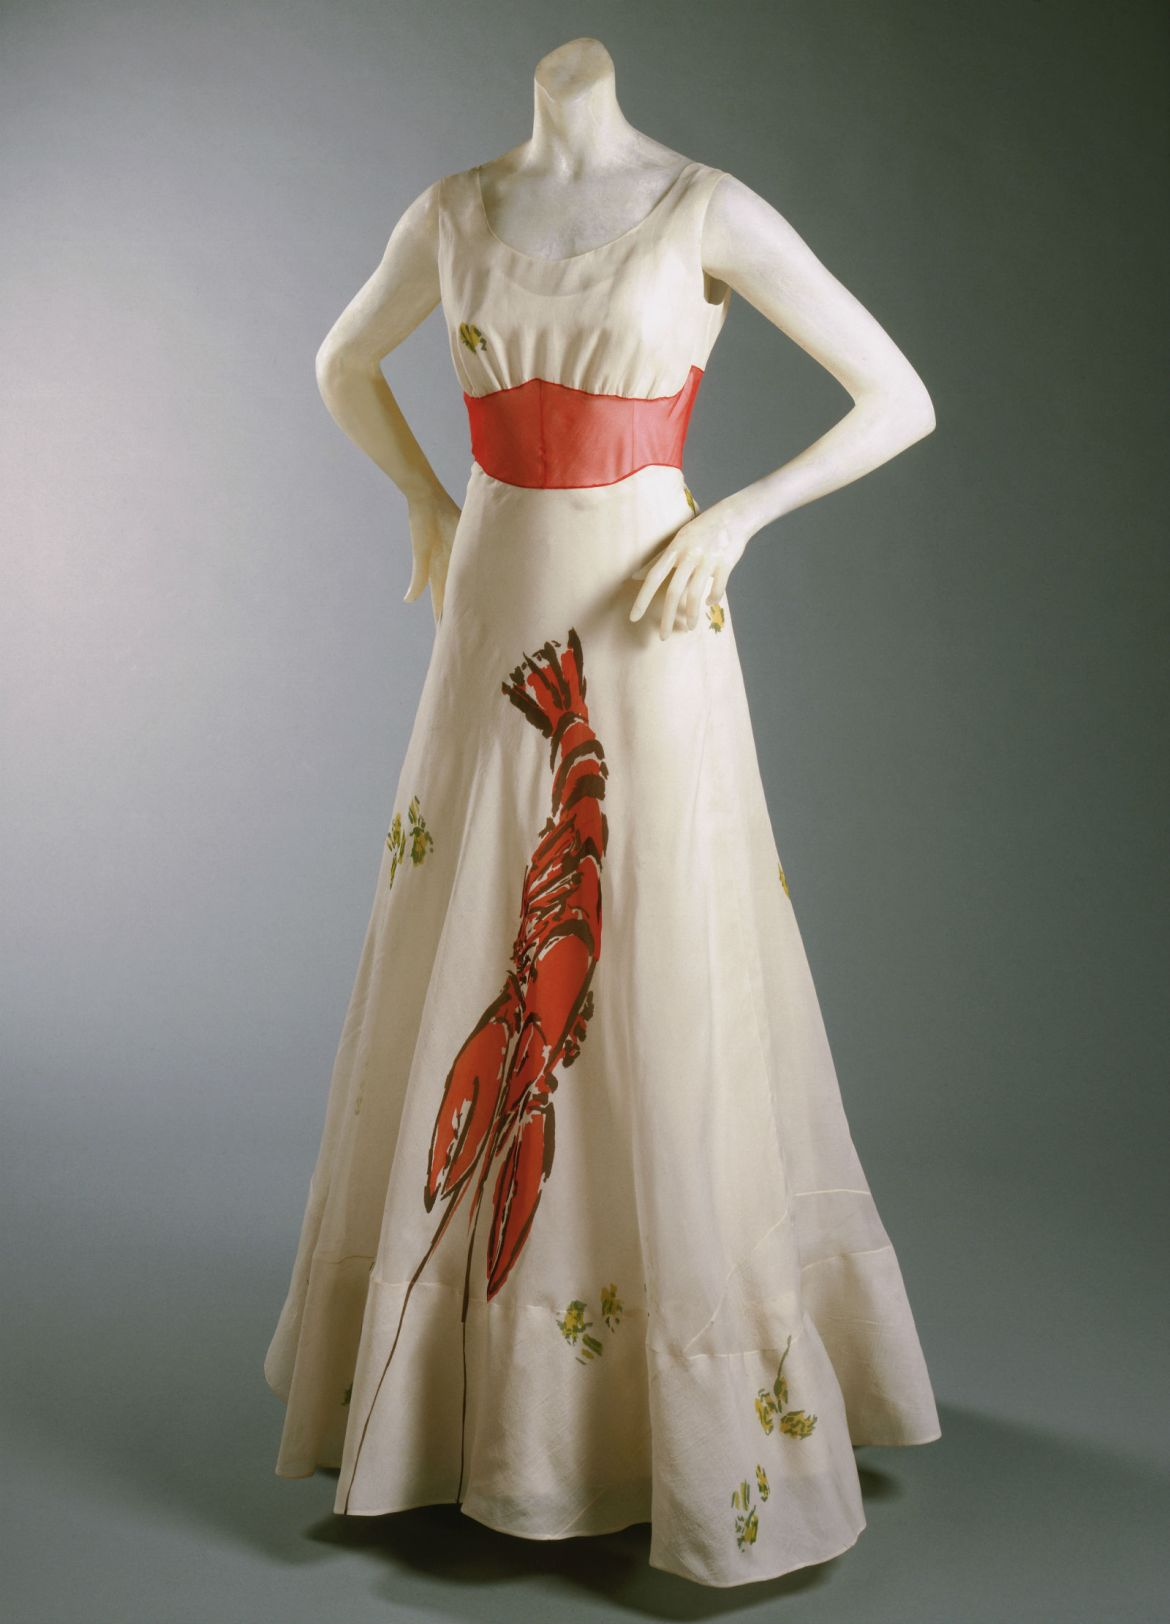 Woman's Dinner Dress. Philadelphia Museum of Art, Gift of Mme Elsa Schiaparelli, 1969-232-52